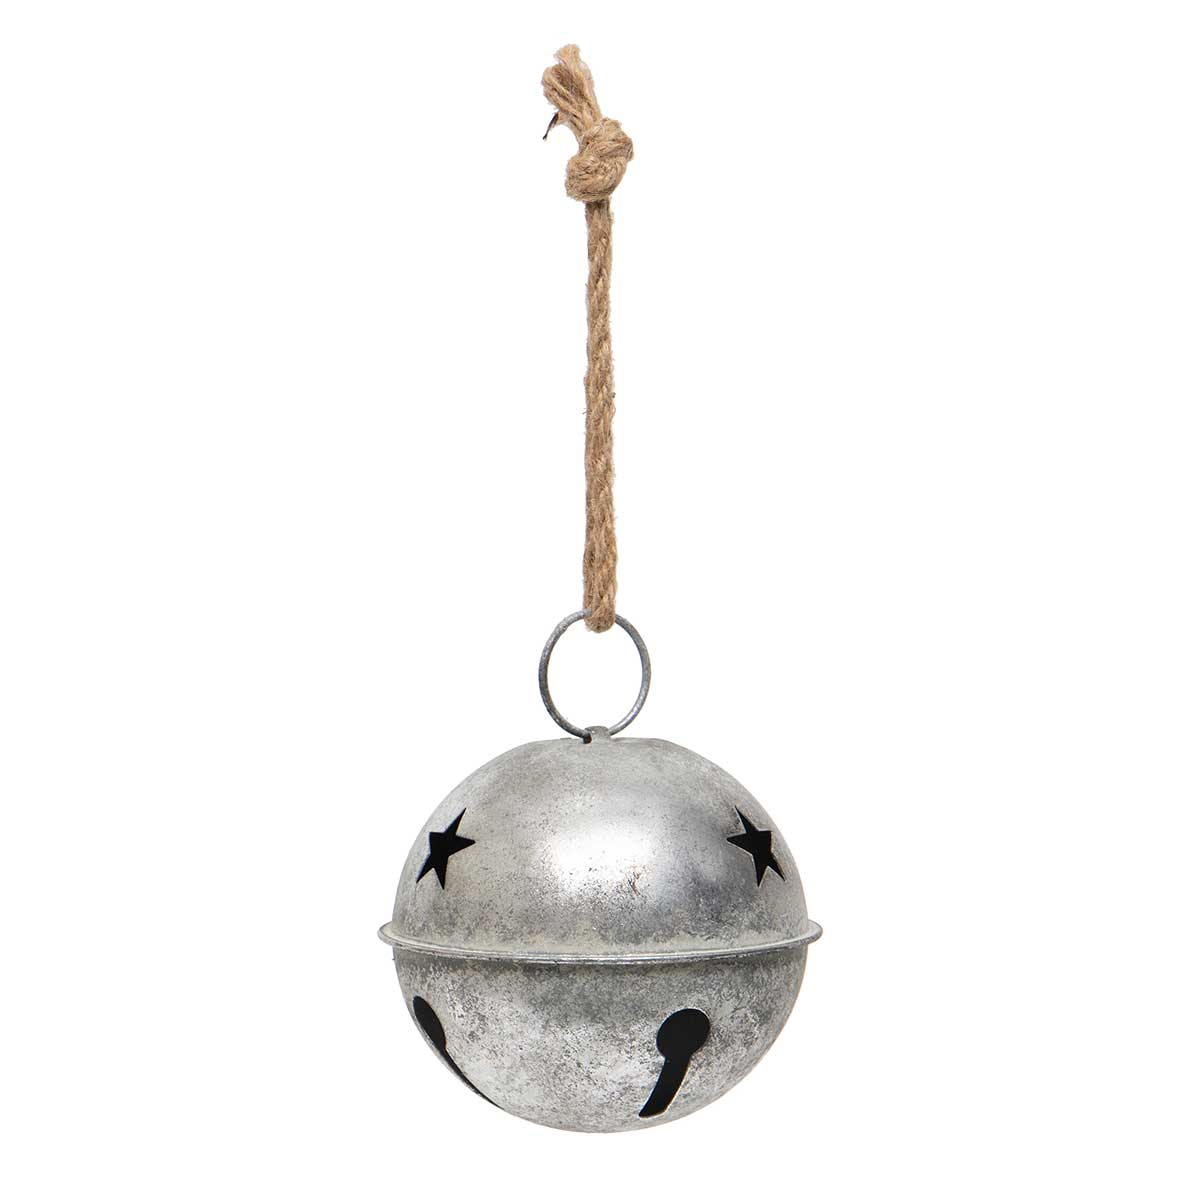 SILVER METAL JINGLE BELL